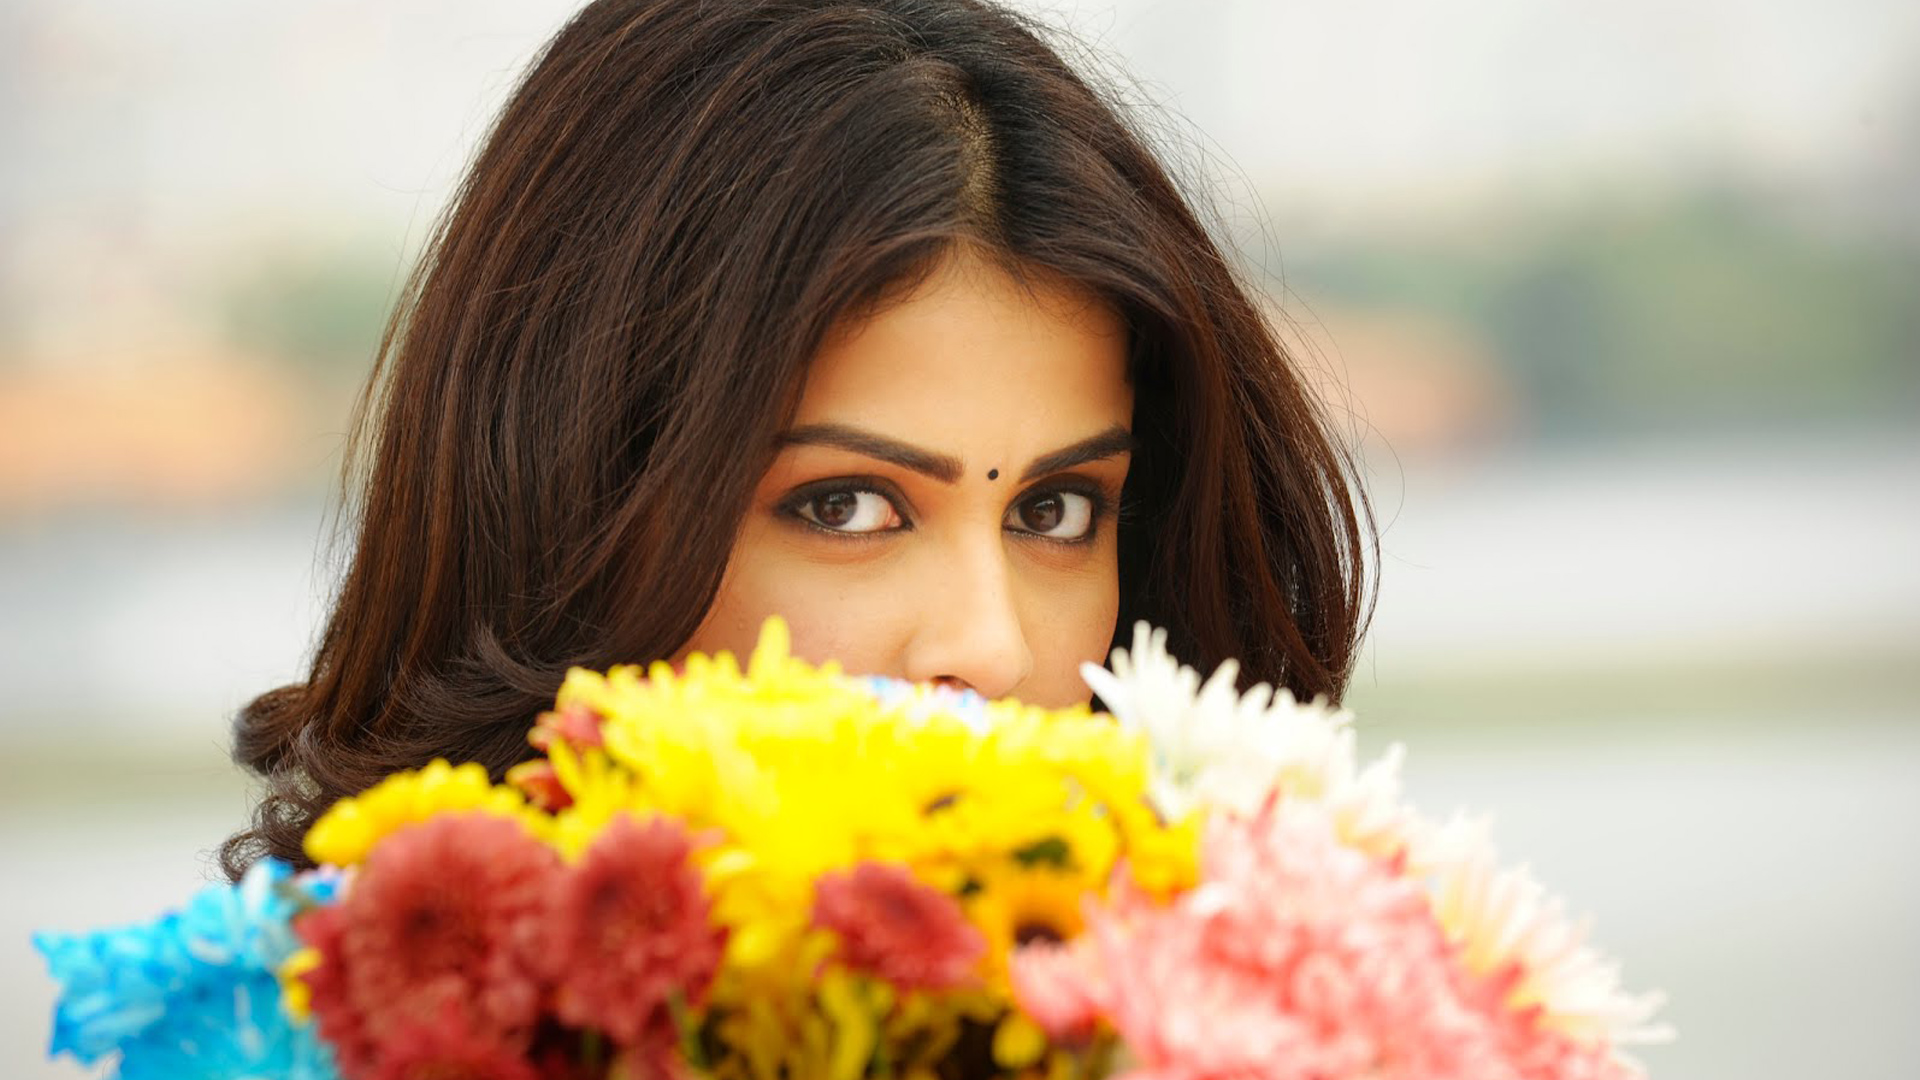 Genelia in Telugu Movie 186.22 Kb